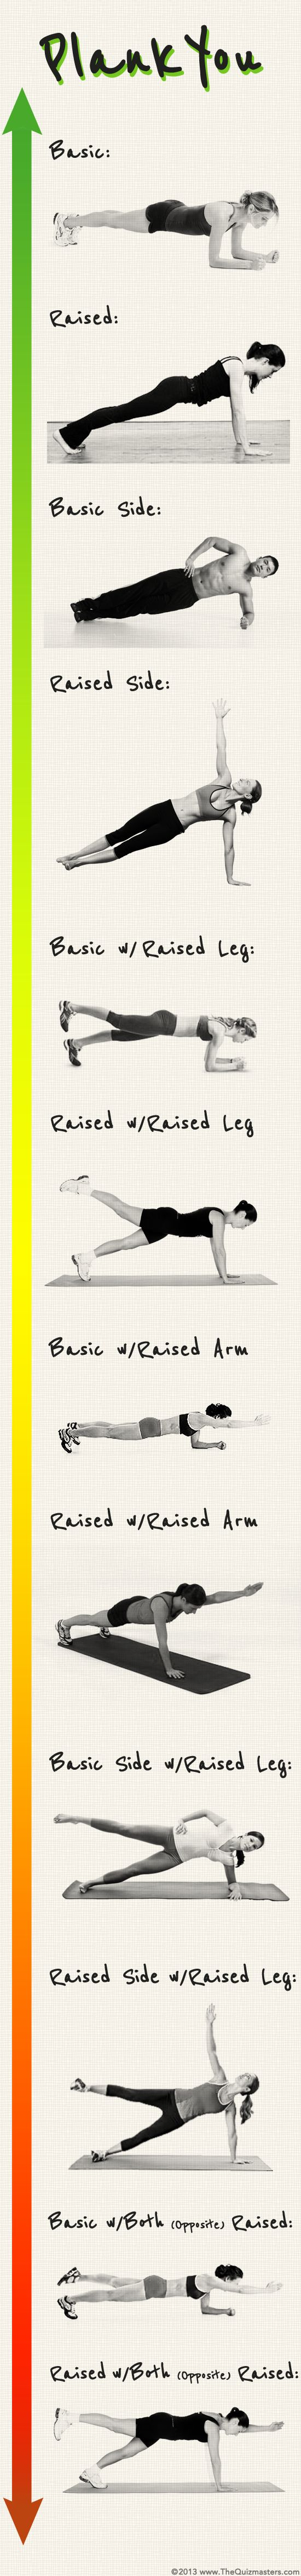 Get a sexier hour glass body with these 12 plank exercises that will tighten, tone, and taper your core. Re-pin now, check later.